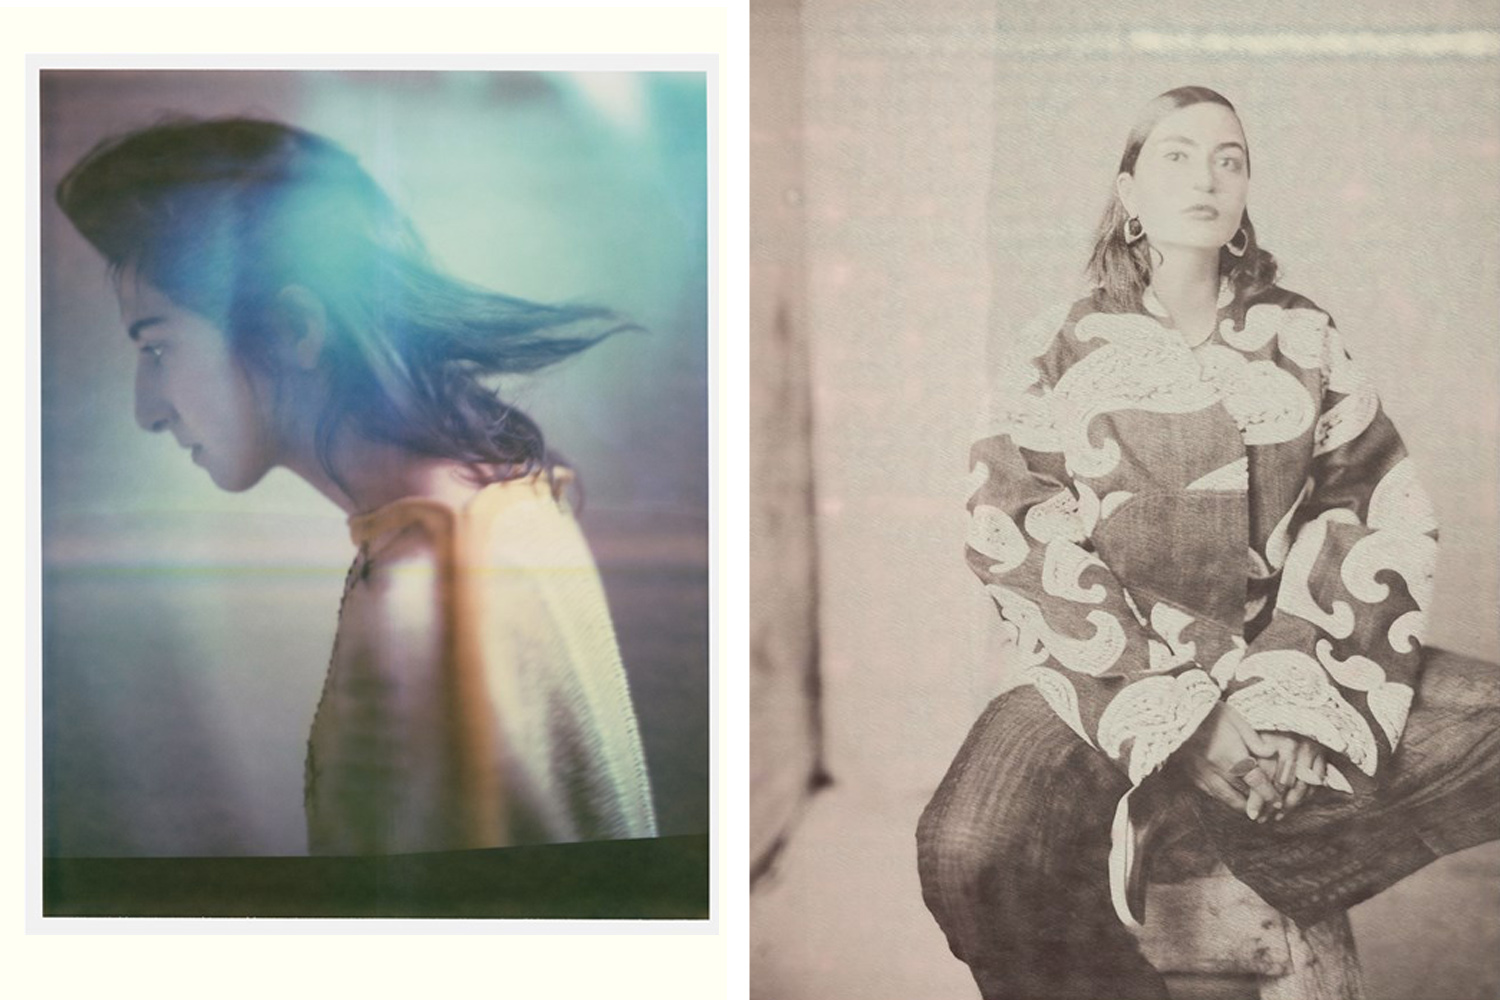 Images courtesy of Acne Studios. Photography Paolo Roversi.